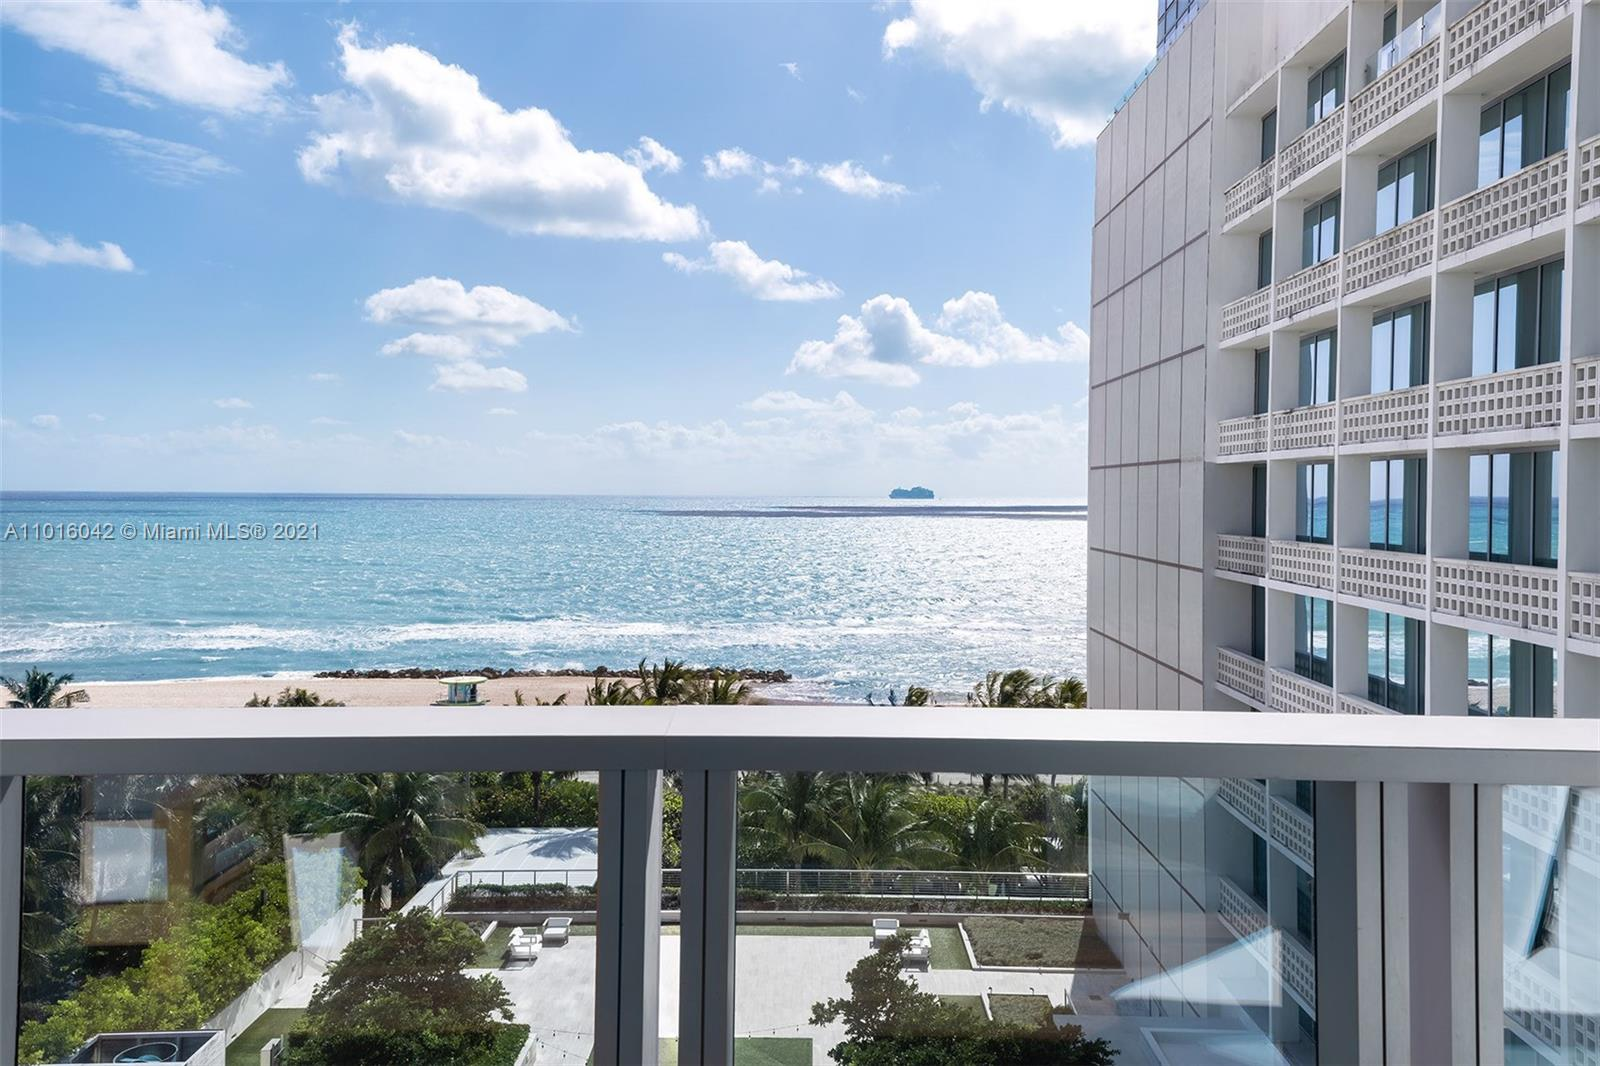 Defined by open living spaces, abundant natural light, and absolutely breathtaking panoramic beach and water views, this 3,002 SF+/- oceanfront condominium offers 3 bedrooms, all with terrace access, 3 full and 1 half spa-like bathrooms, stunning modern interiors, complete access to exemplary hotel amenities, and a dedicated private entrance, plus a sweeping 516 SF+/- balcony ideal for year-round entertaining. The EDITION is an outstanding oceanfront residence with hotel amenities designed for high expectations: entertain, live well, and visit the beach all in one luxurious setting. Just steps from the Miami Beach Boardwalk and convenient to all major airports, the EDITION offers oceanfront bliss with nearly instant access to Miami's most popular destinations.